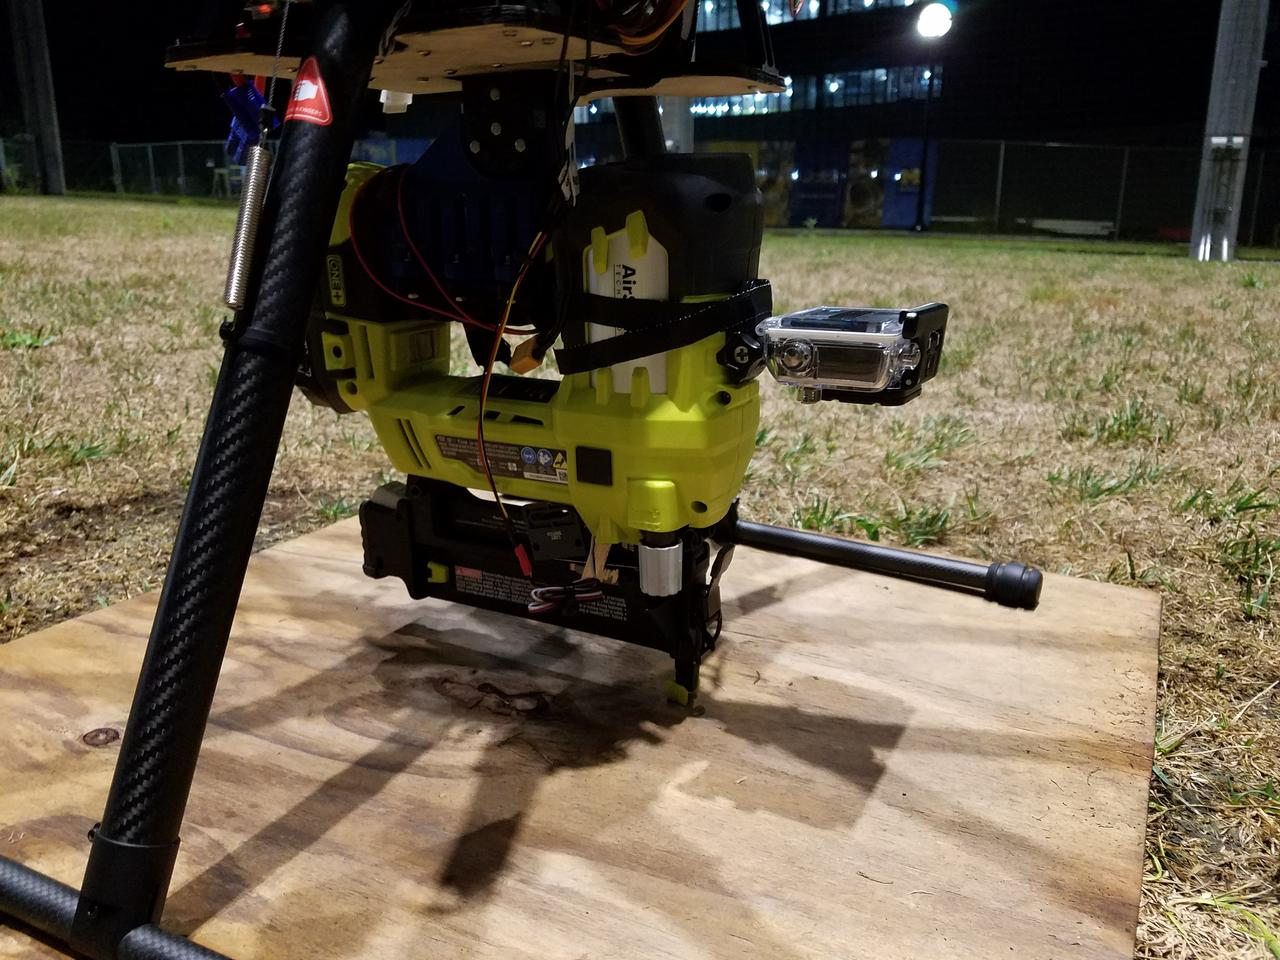 Scientists at the University of Michiganhave demonstrated an octocopter equipped with a nail gun and a knack for fixing asphalt shingles to a mock rooftop